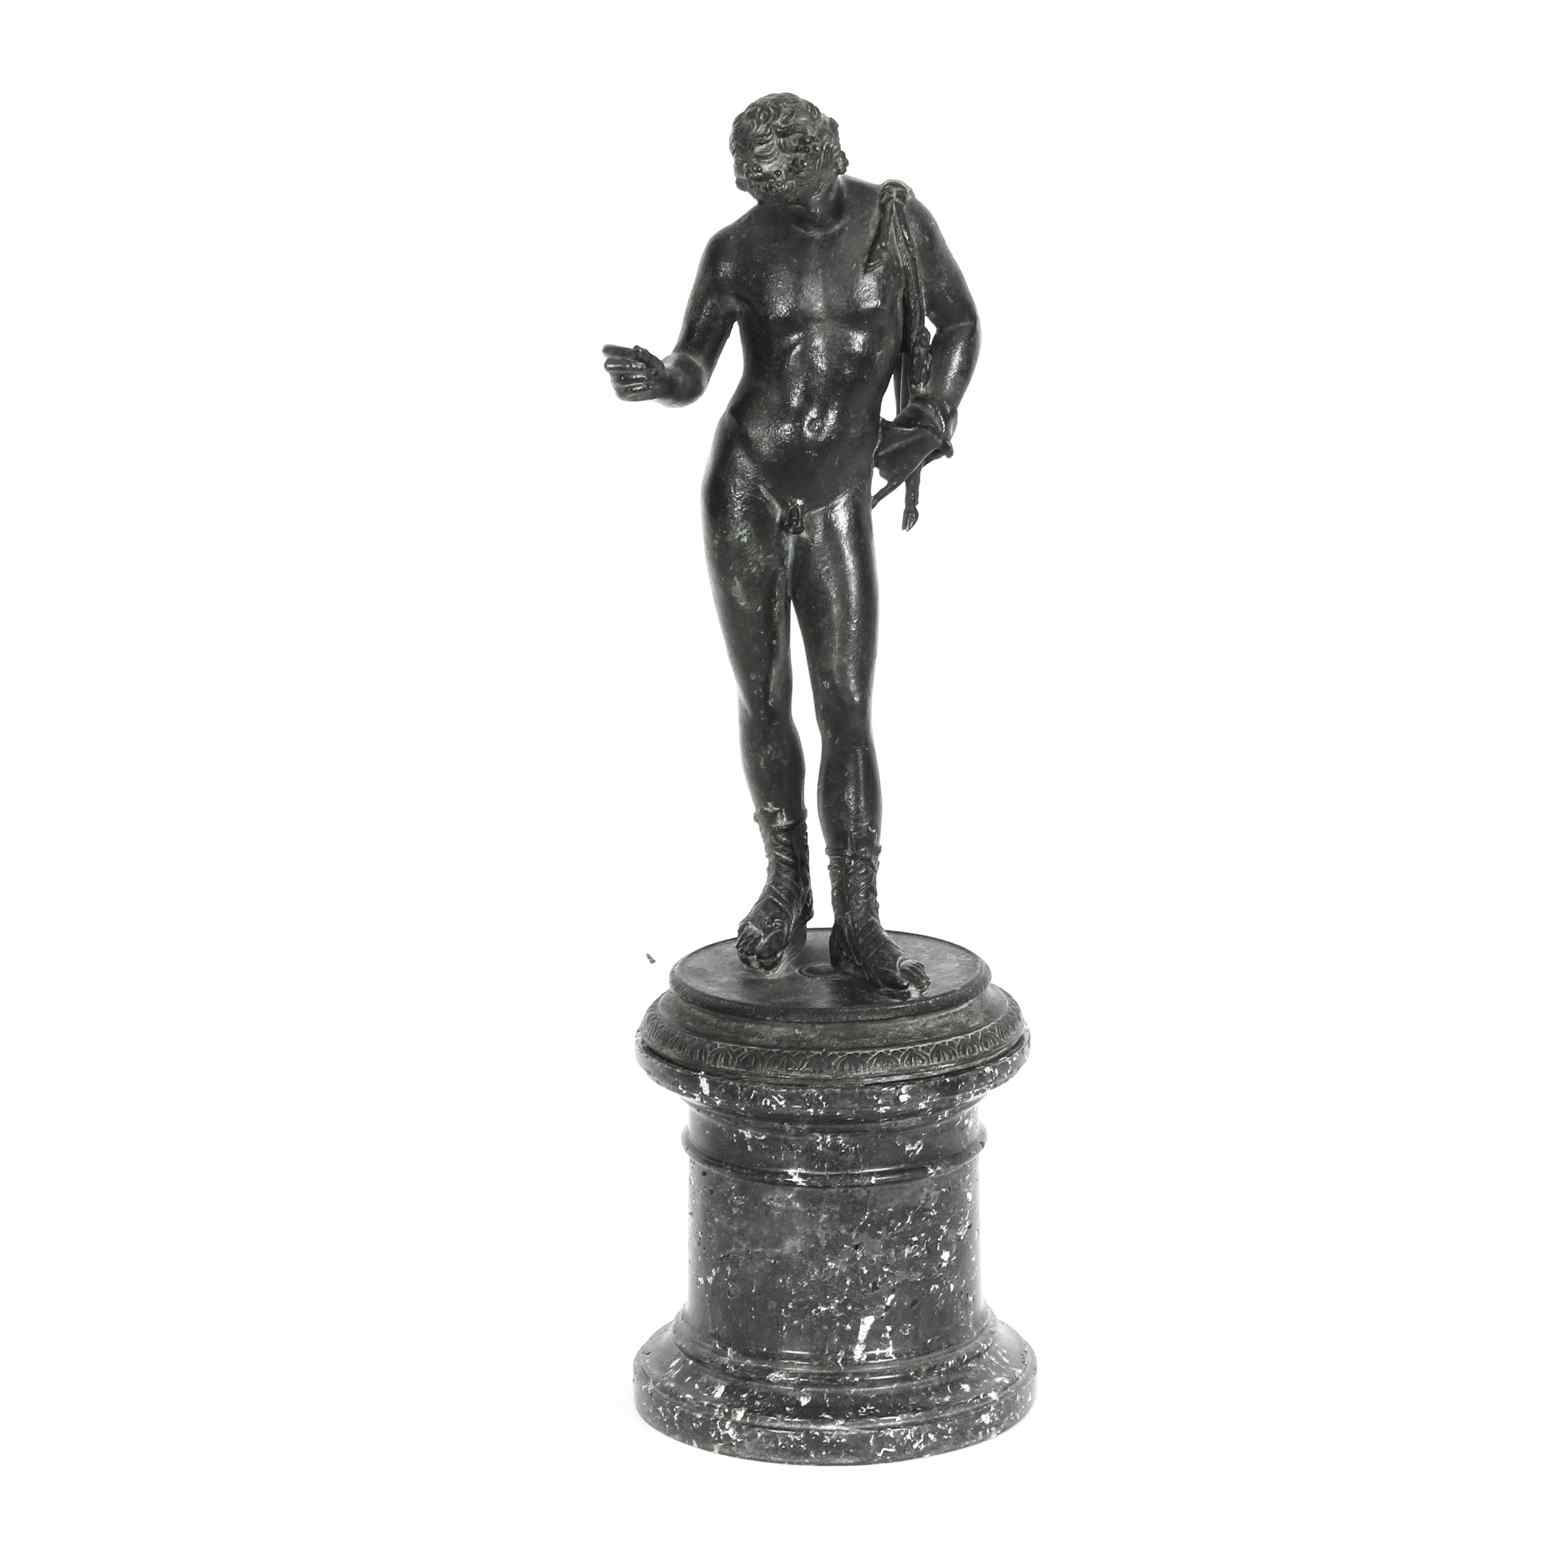 Figura antica di bronzo patinato del Grand Tour di Narciso